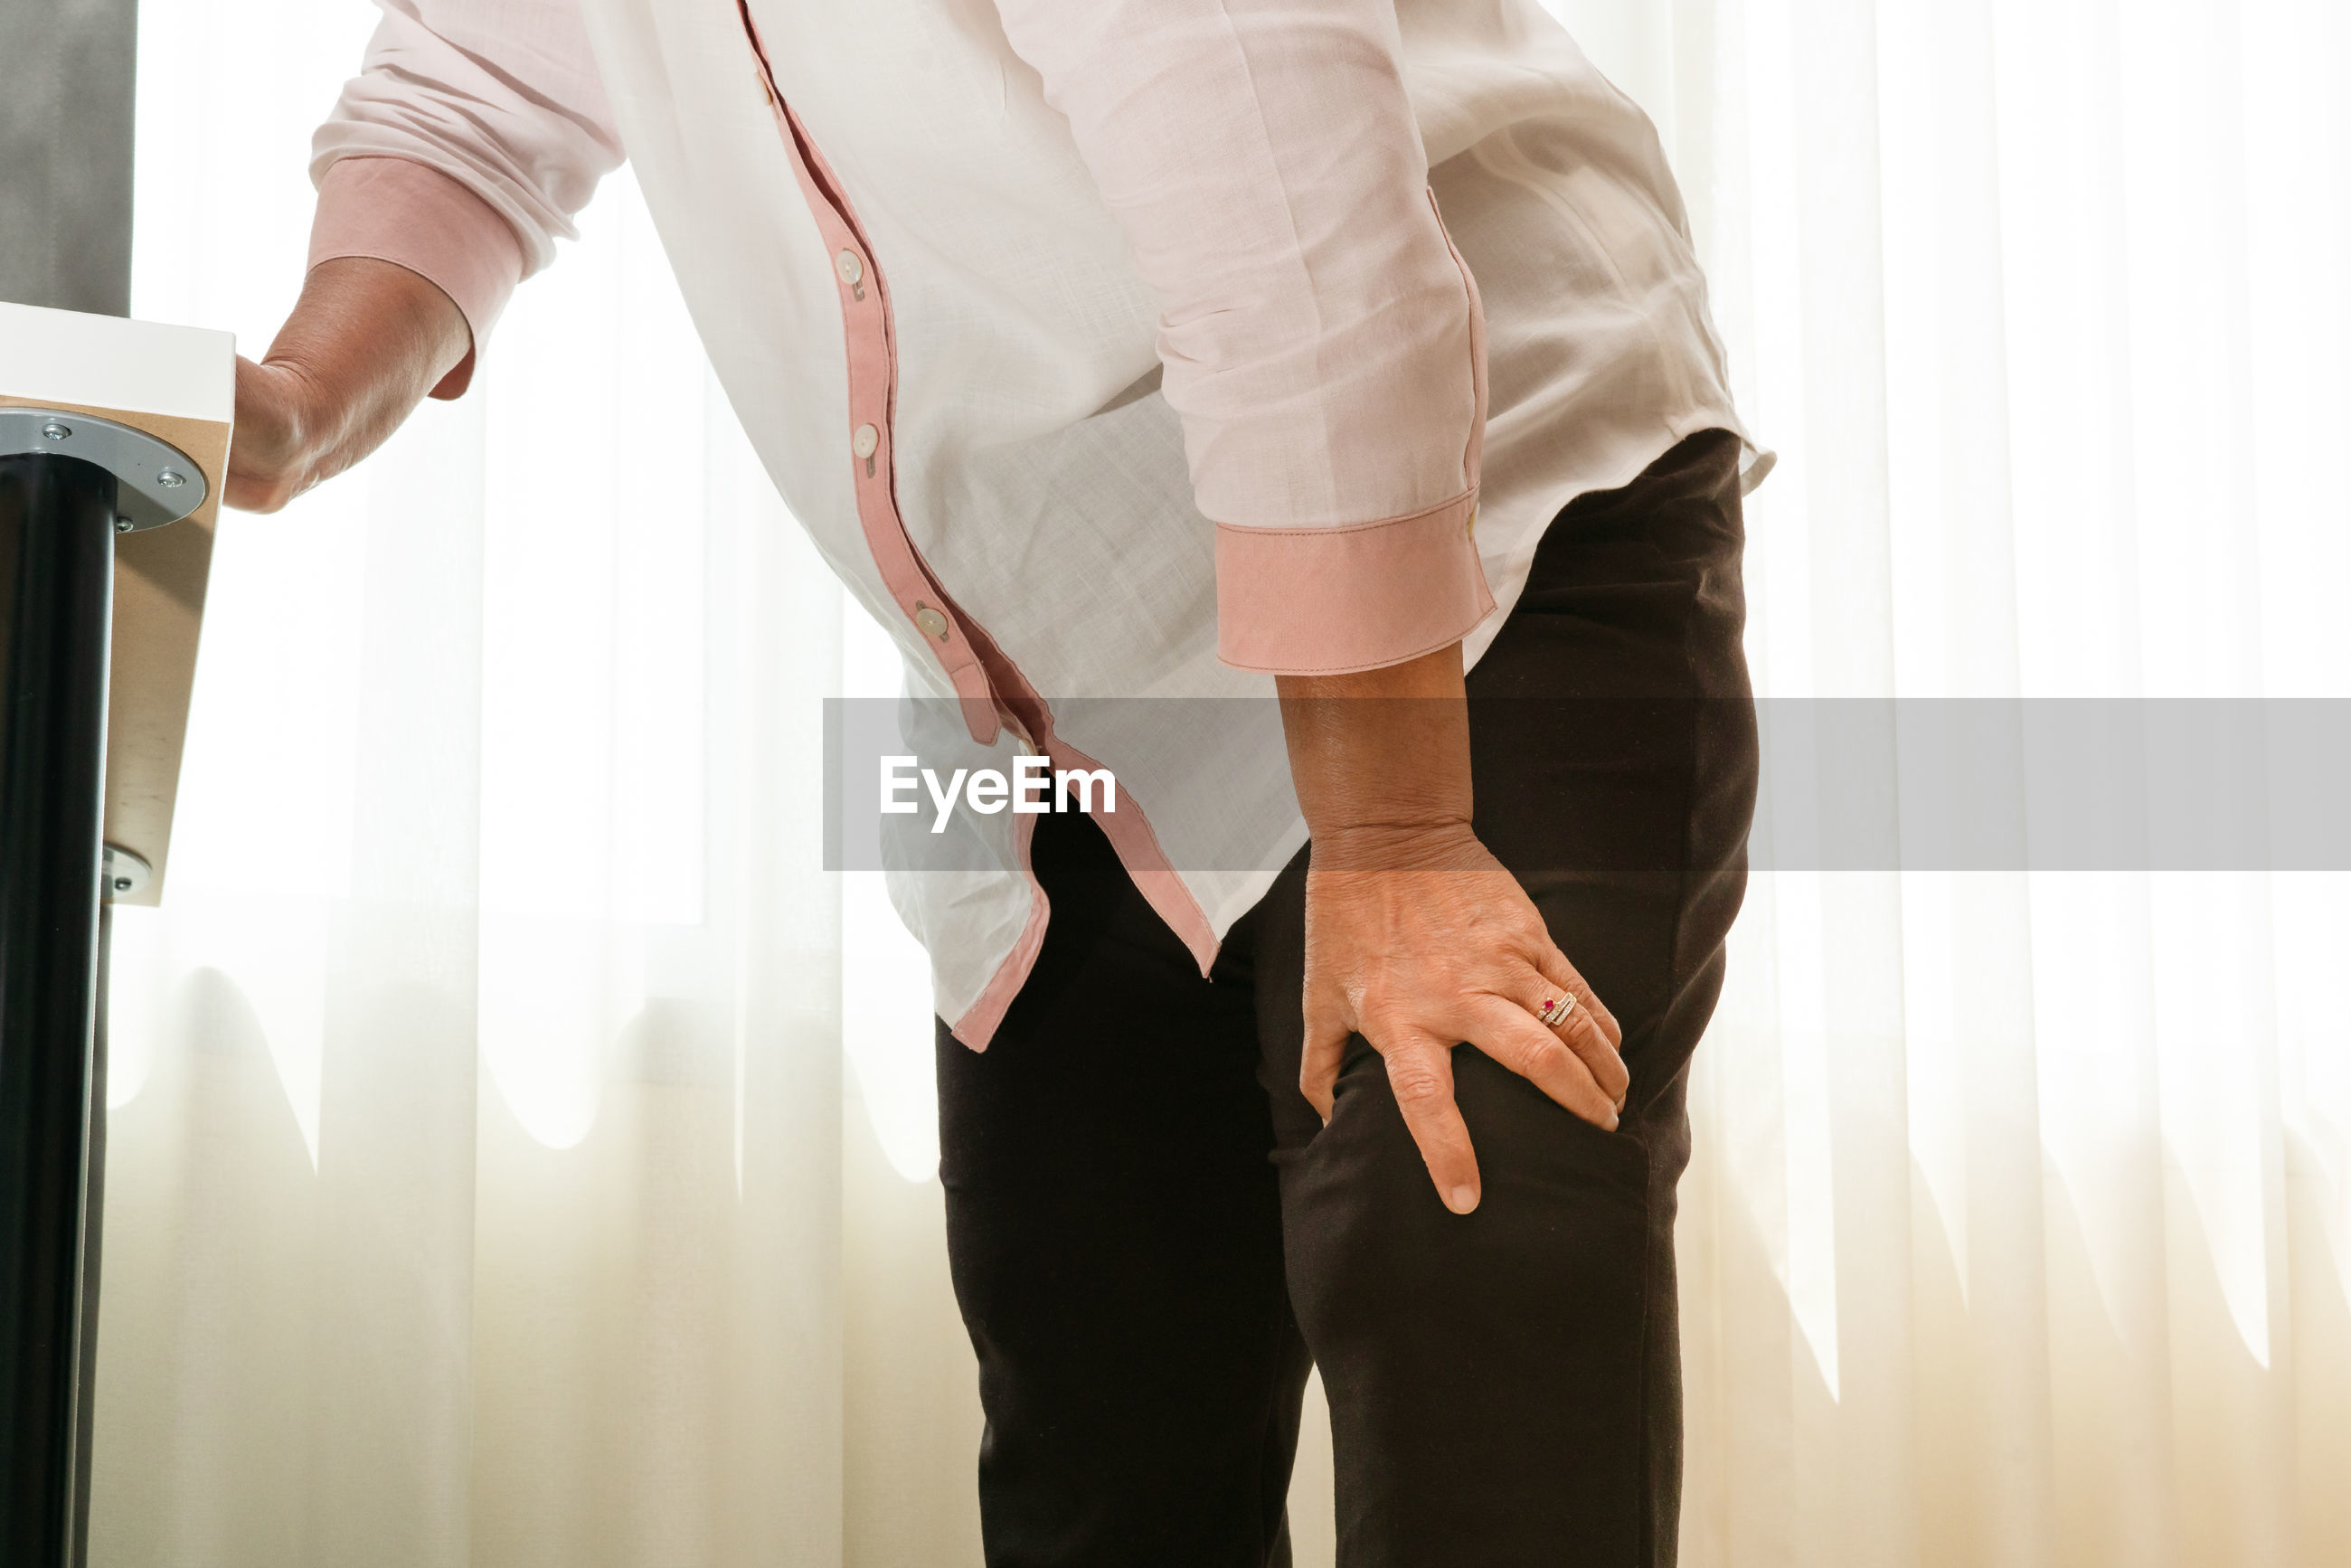 Midsection of woman with knee pain standing against curtain